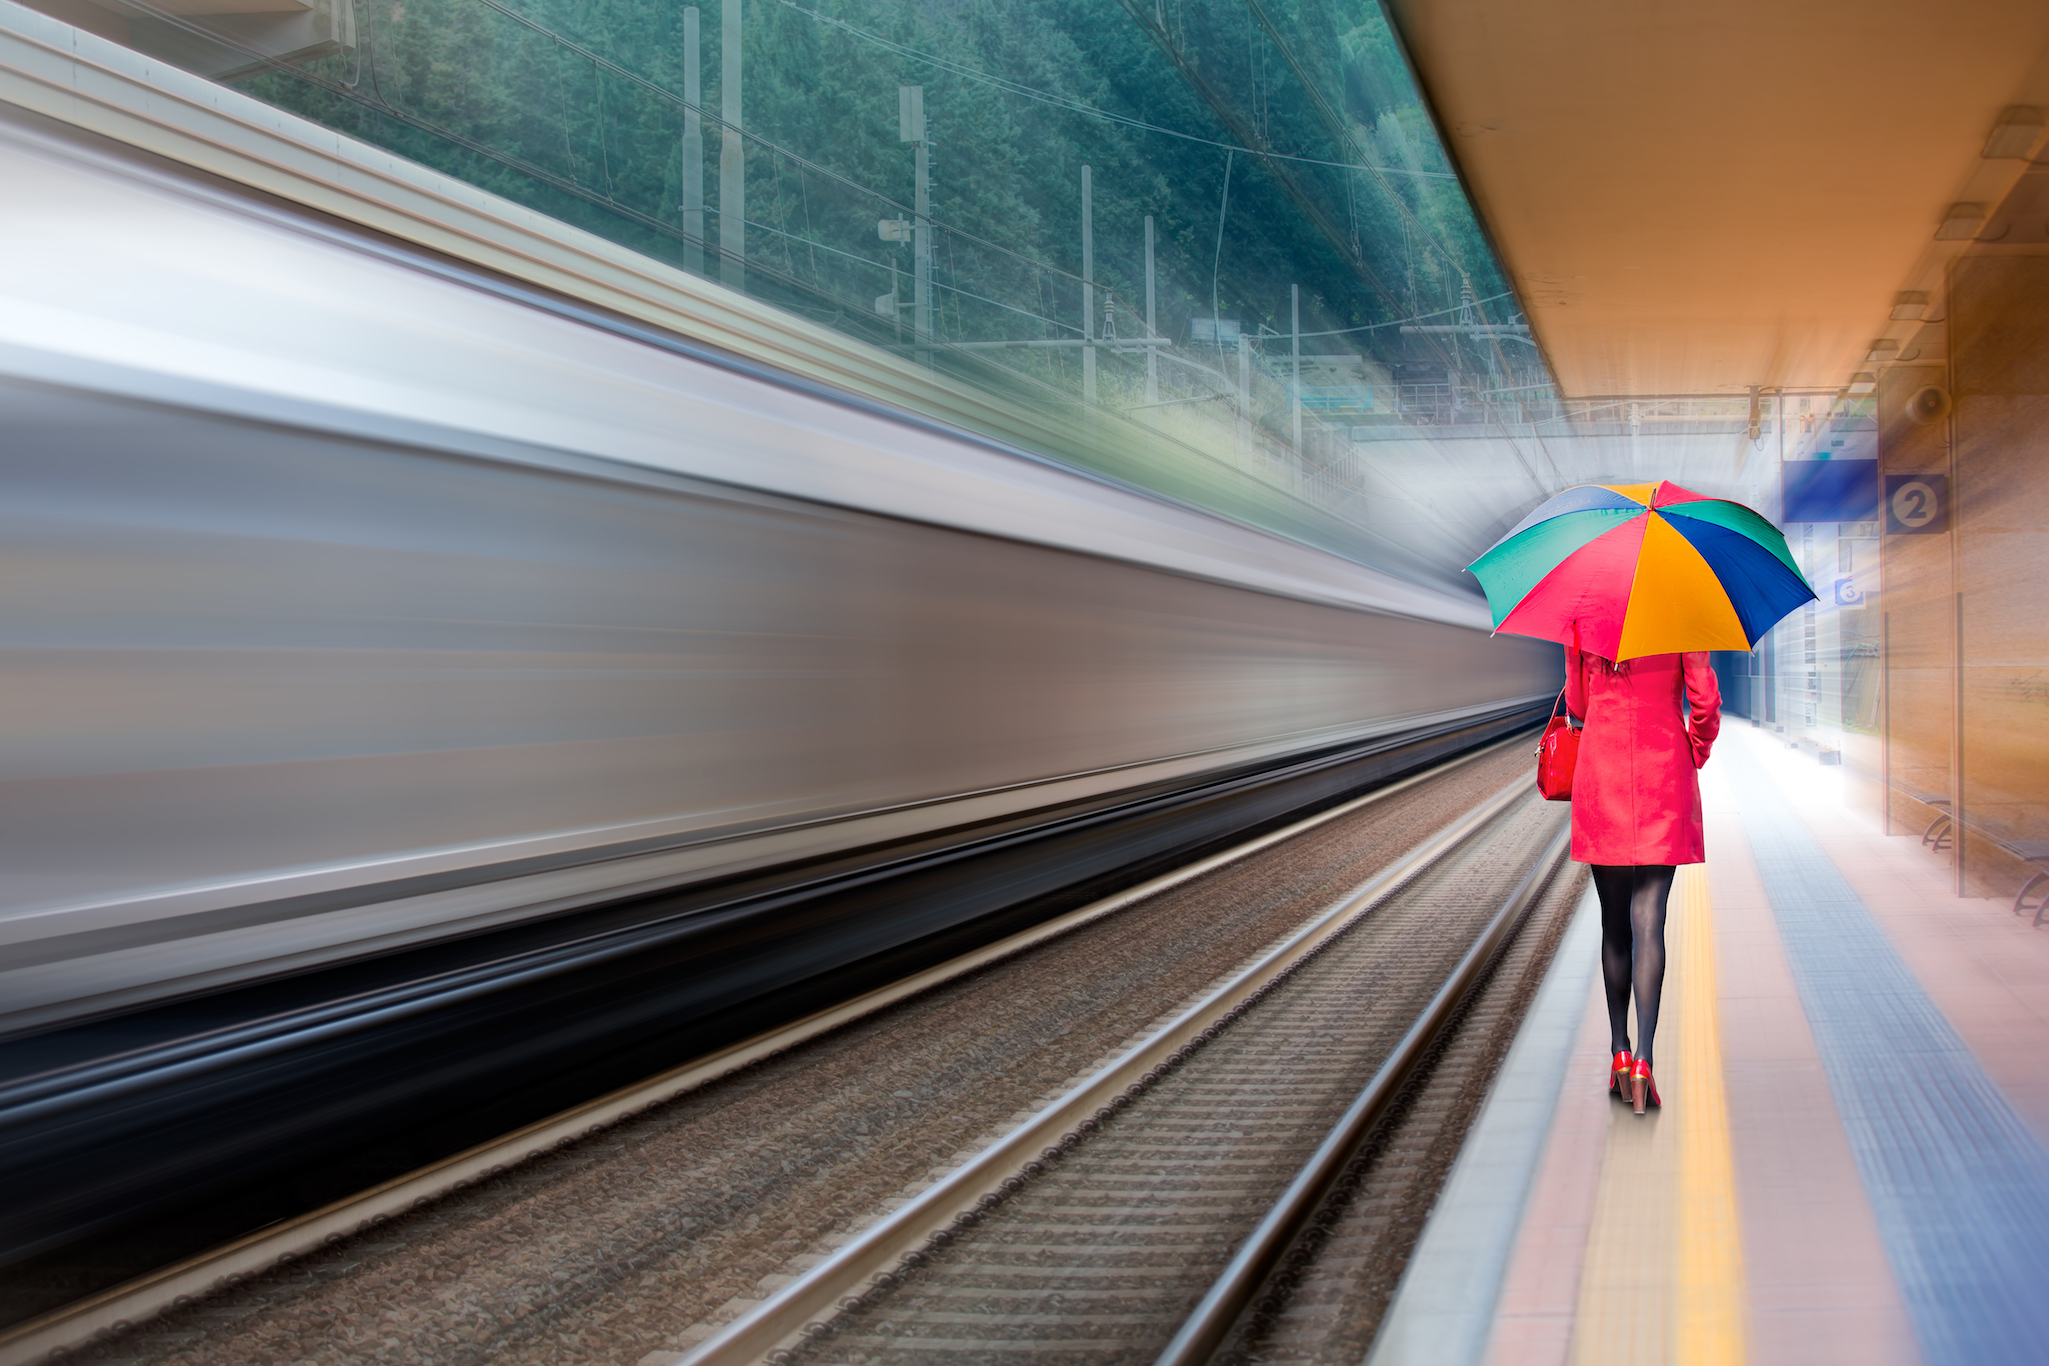 Calling All Physicians to C'mon Aboard the Breast Density High-Speed Train